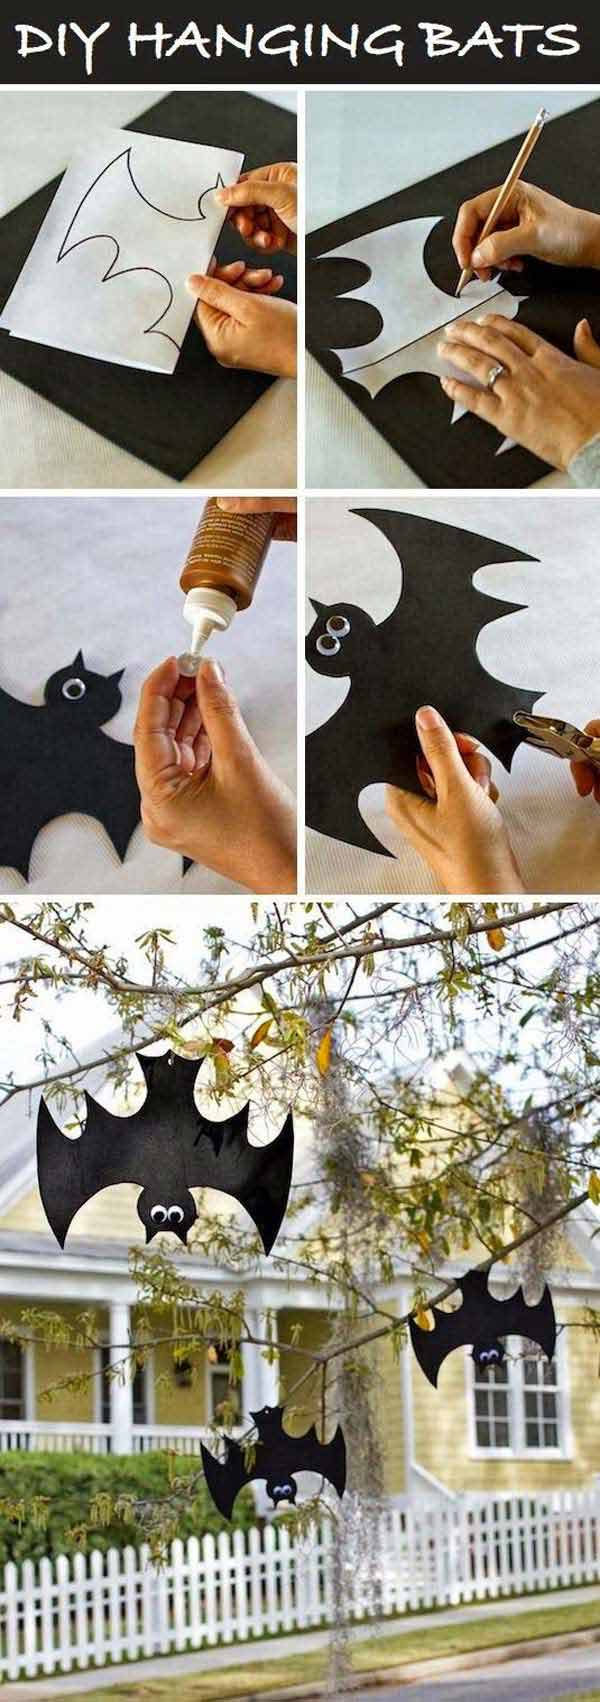 99 Enchanting and Spooky Ways to Decorate Trees for Halloween (4)